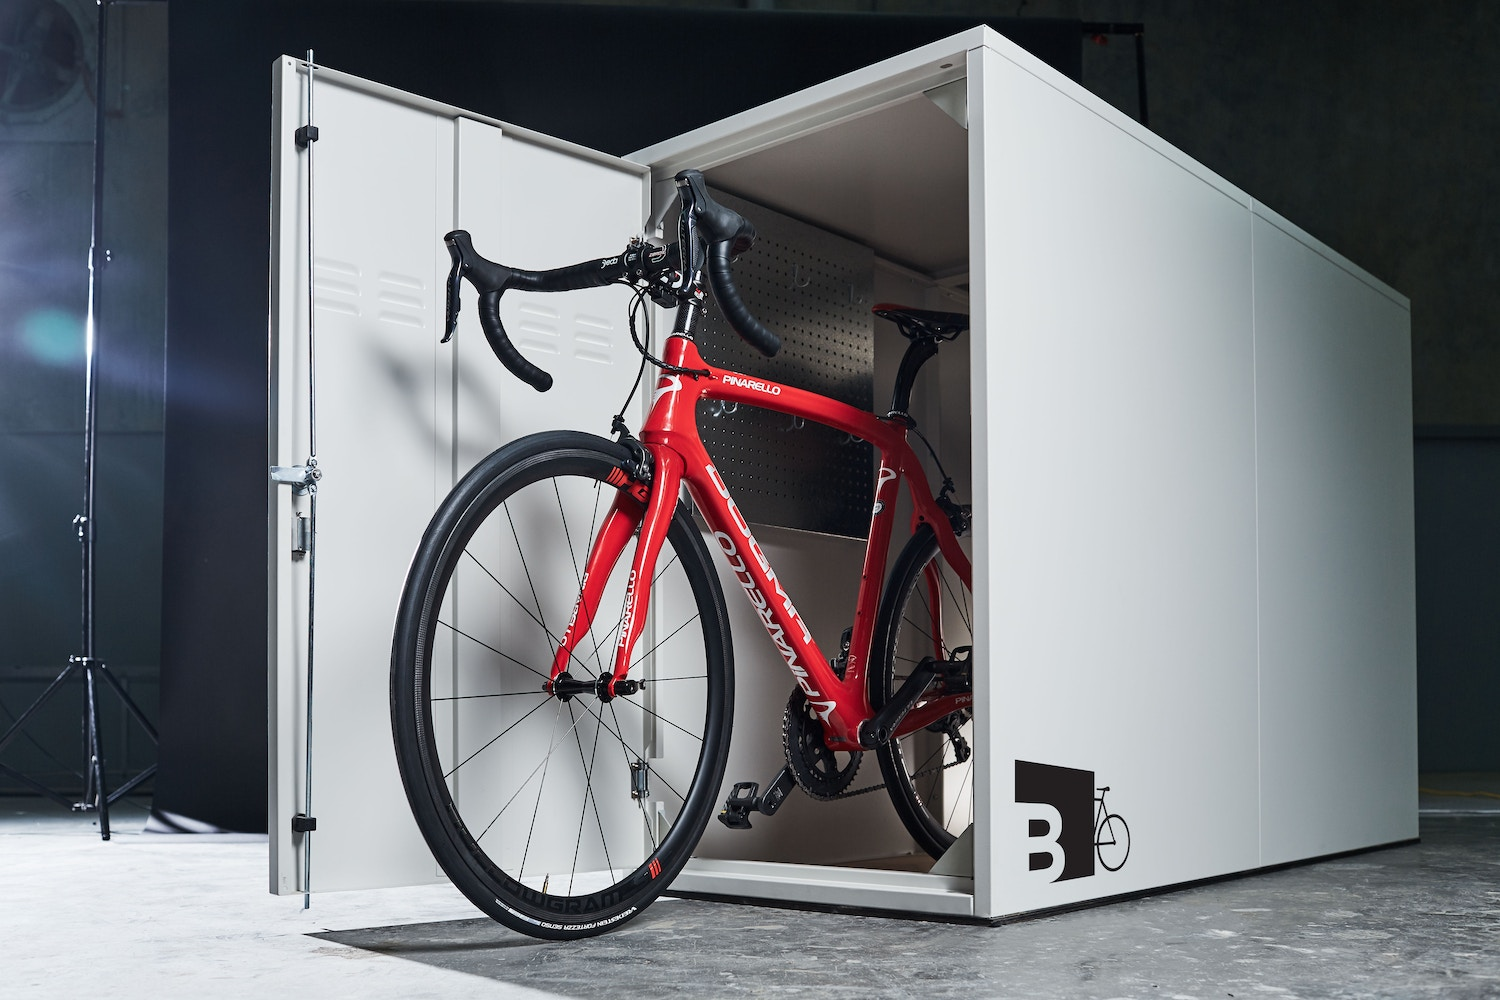 Providing a New Way to Store Your Bike: Apartment B, an Australian start-up